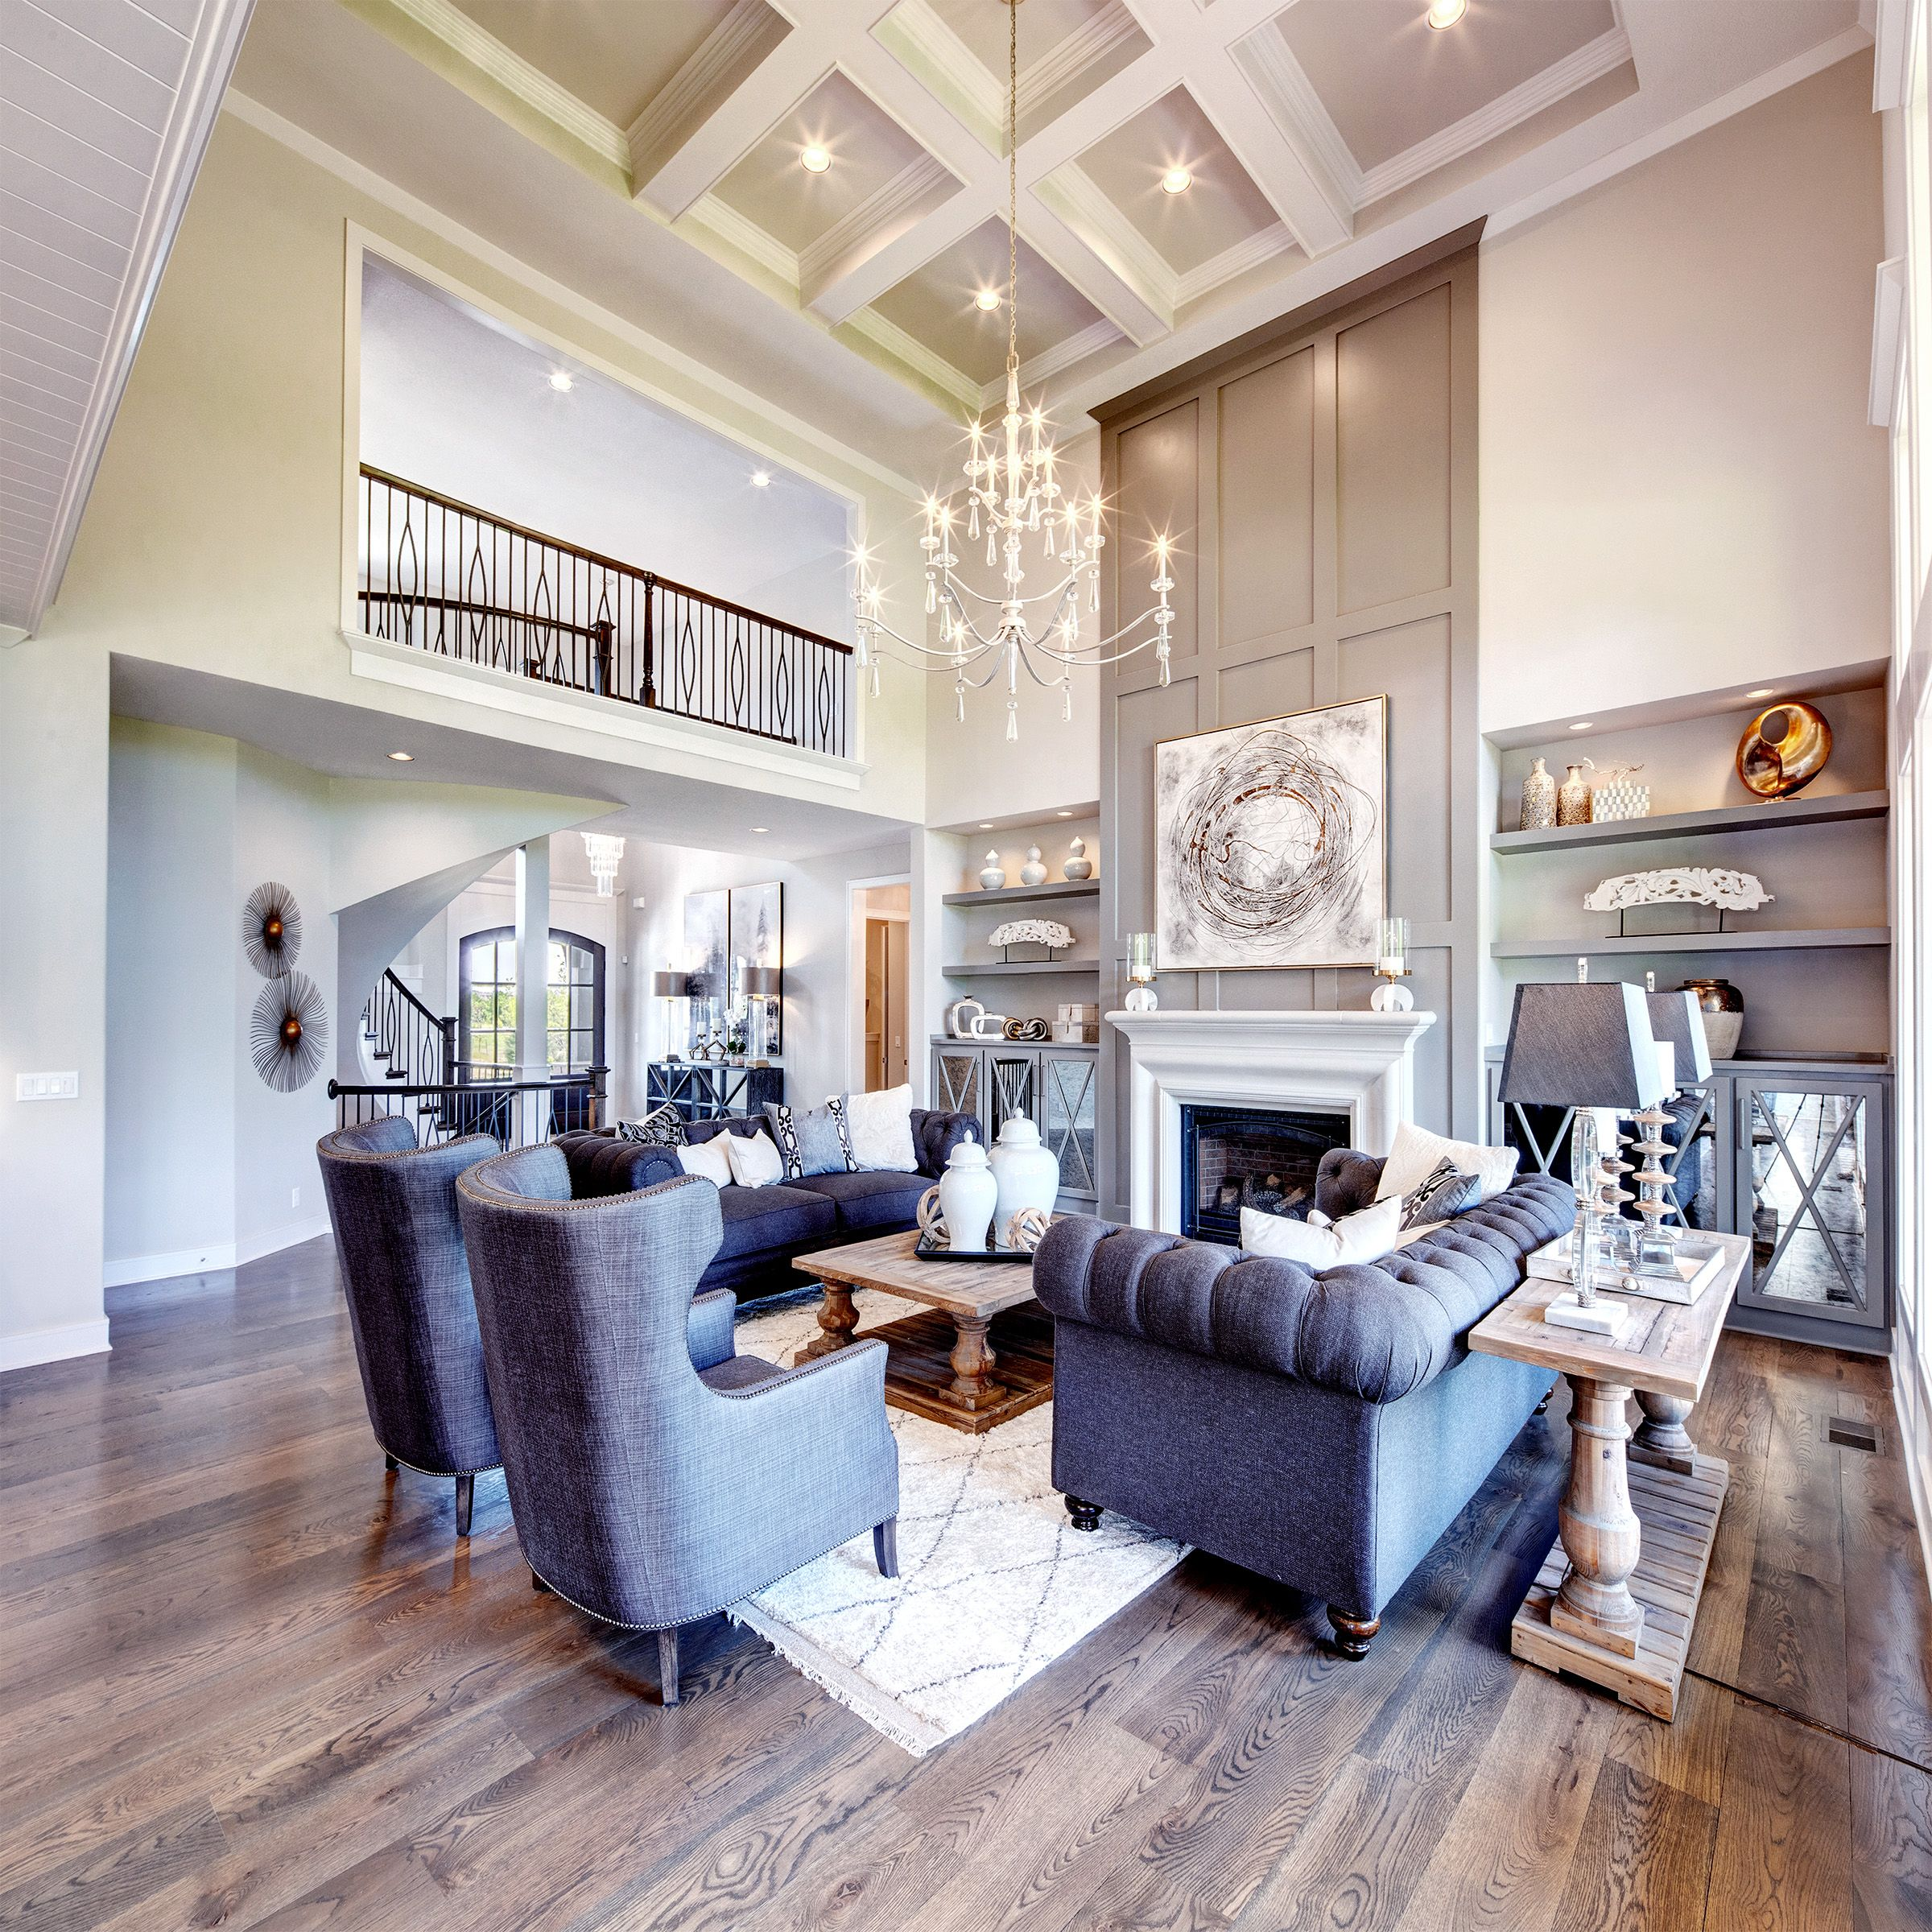 Living Room Tall Ceiling Living Room High Ceiling Living Room Built In Shelves Living Room